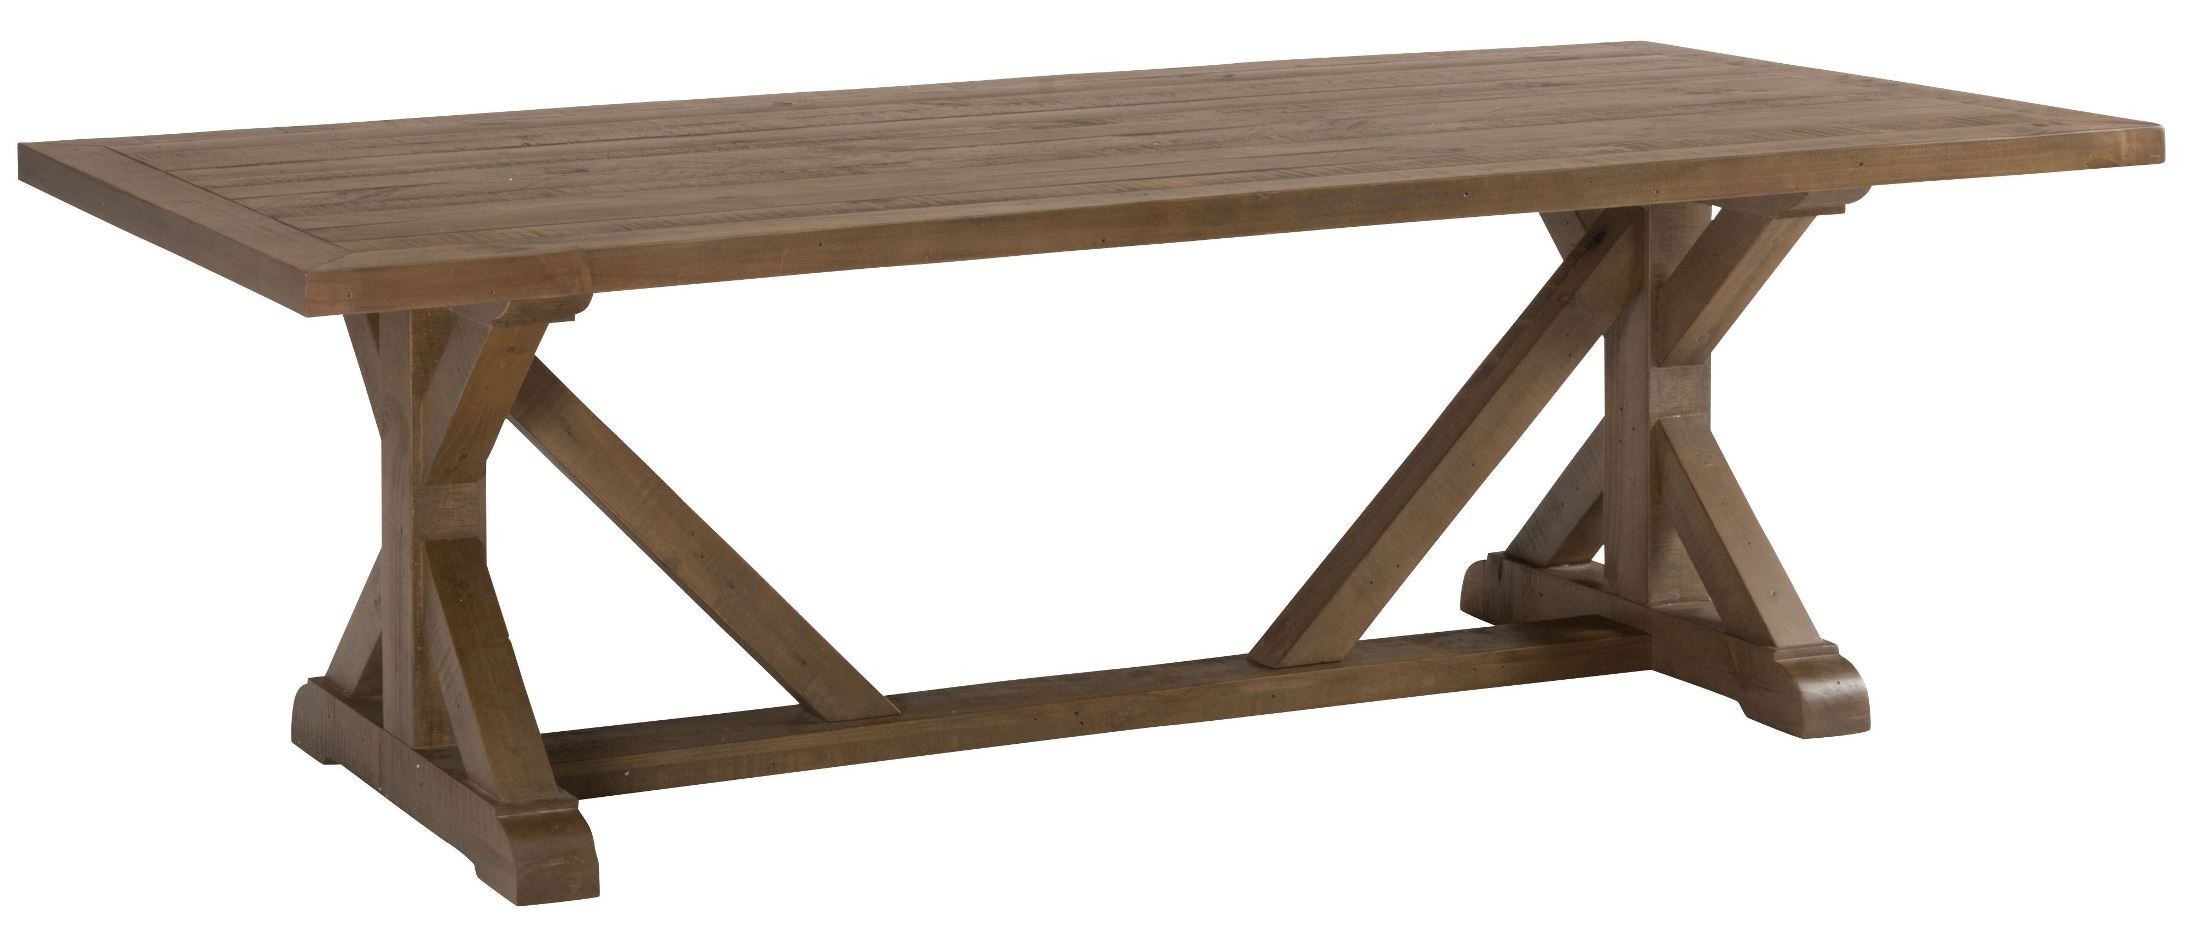 Slater Mill Reclaimed Pine Trestle Dining Table From